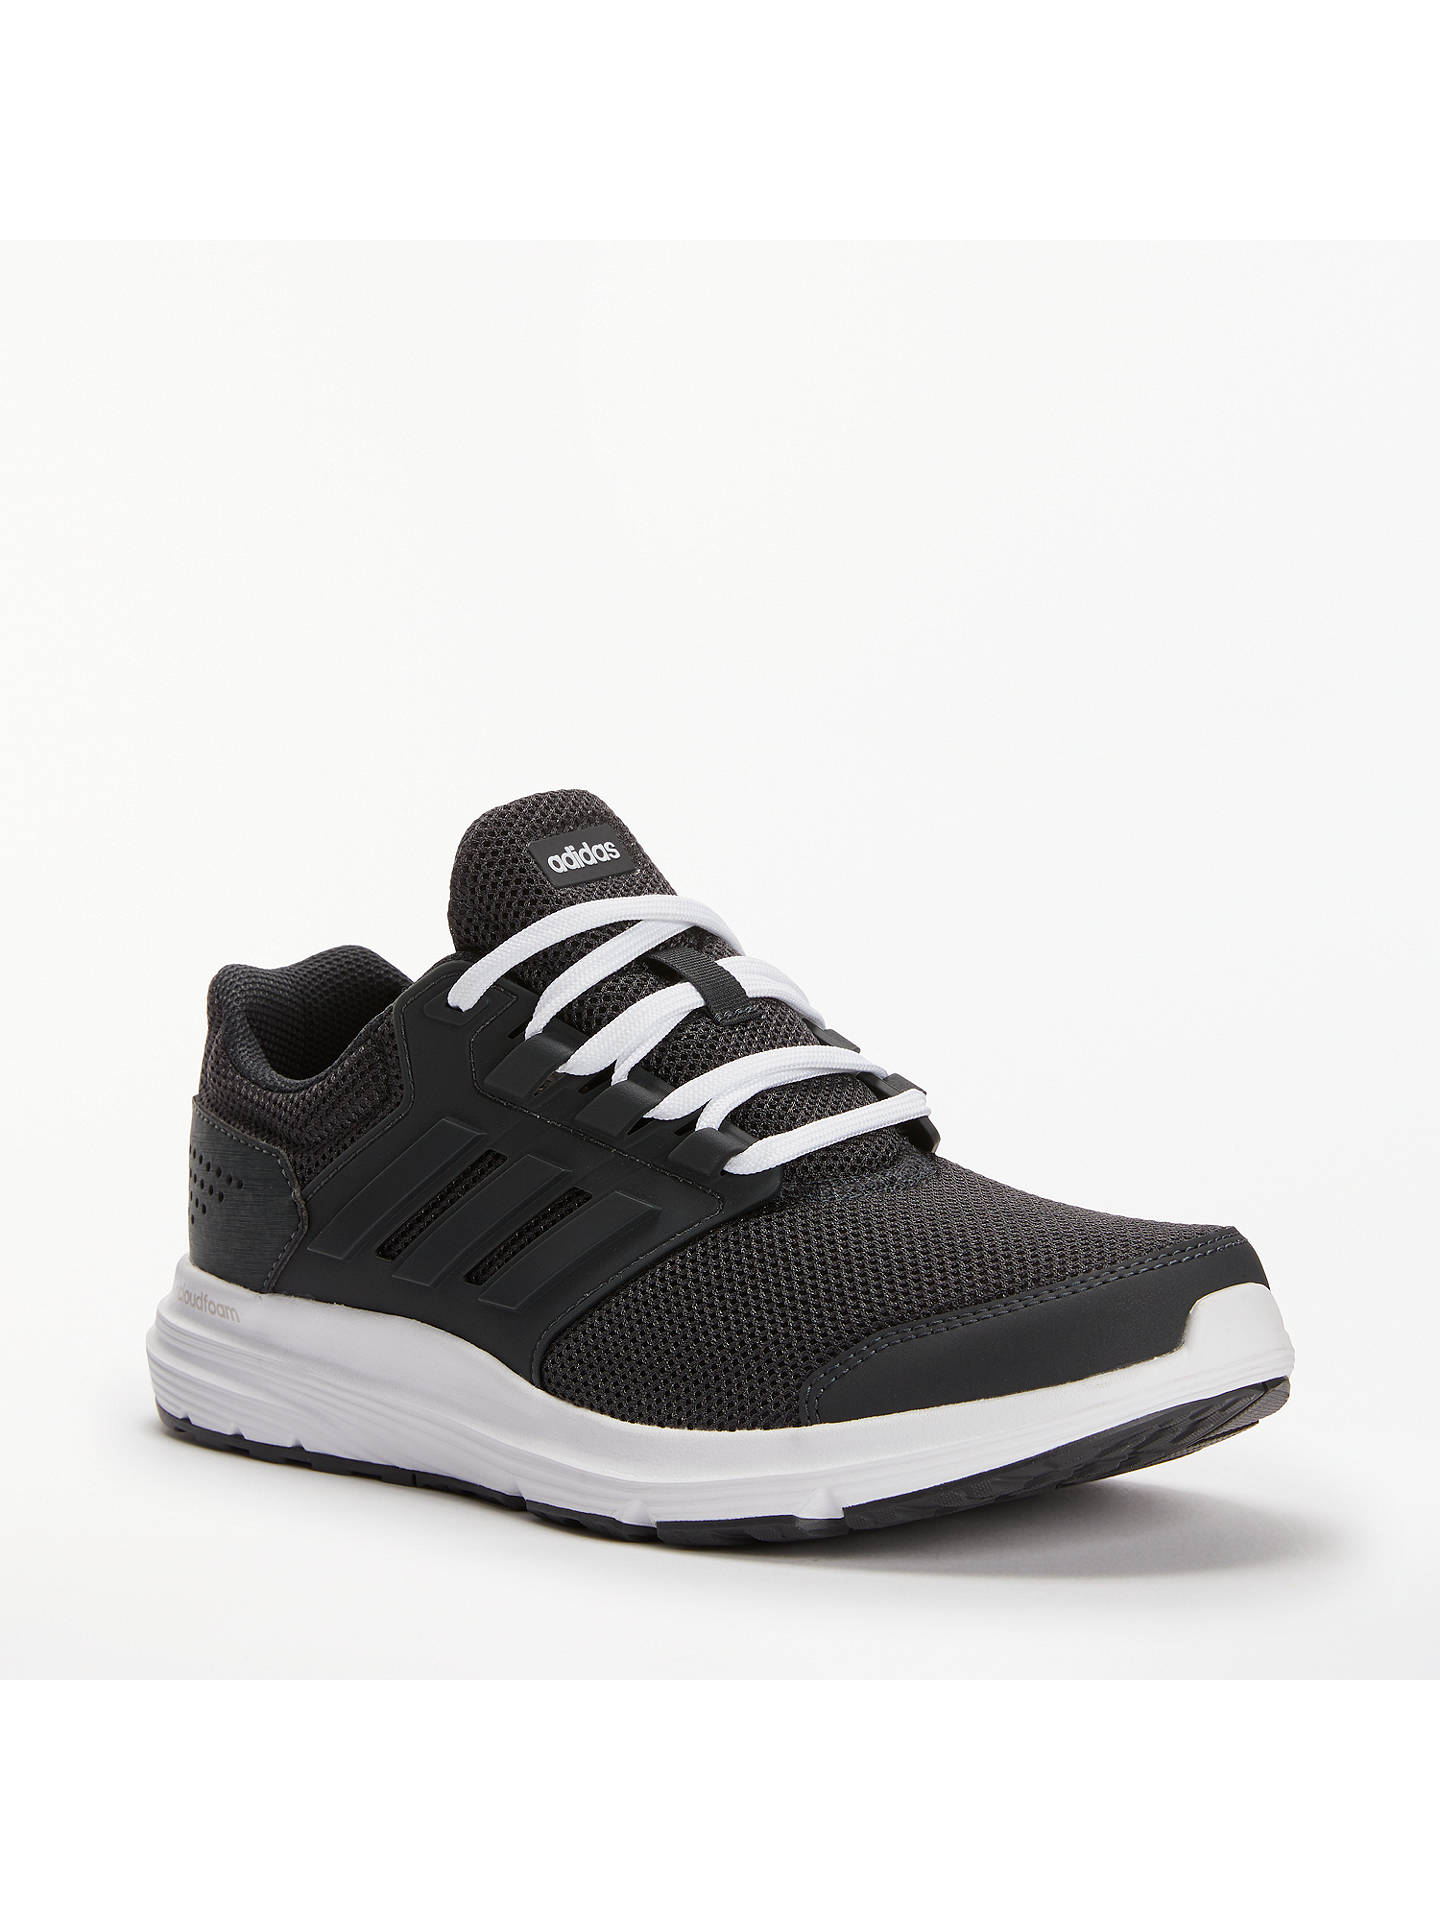 Buyadidas Galaxy 4 Women's Running Shoes, Black, 4 Online at johnlewis.com